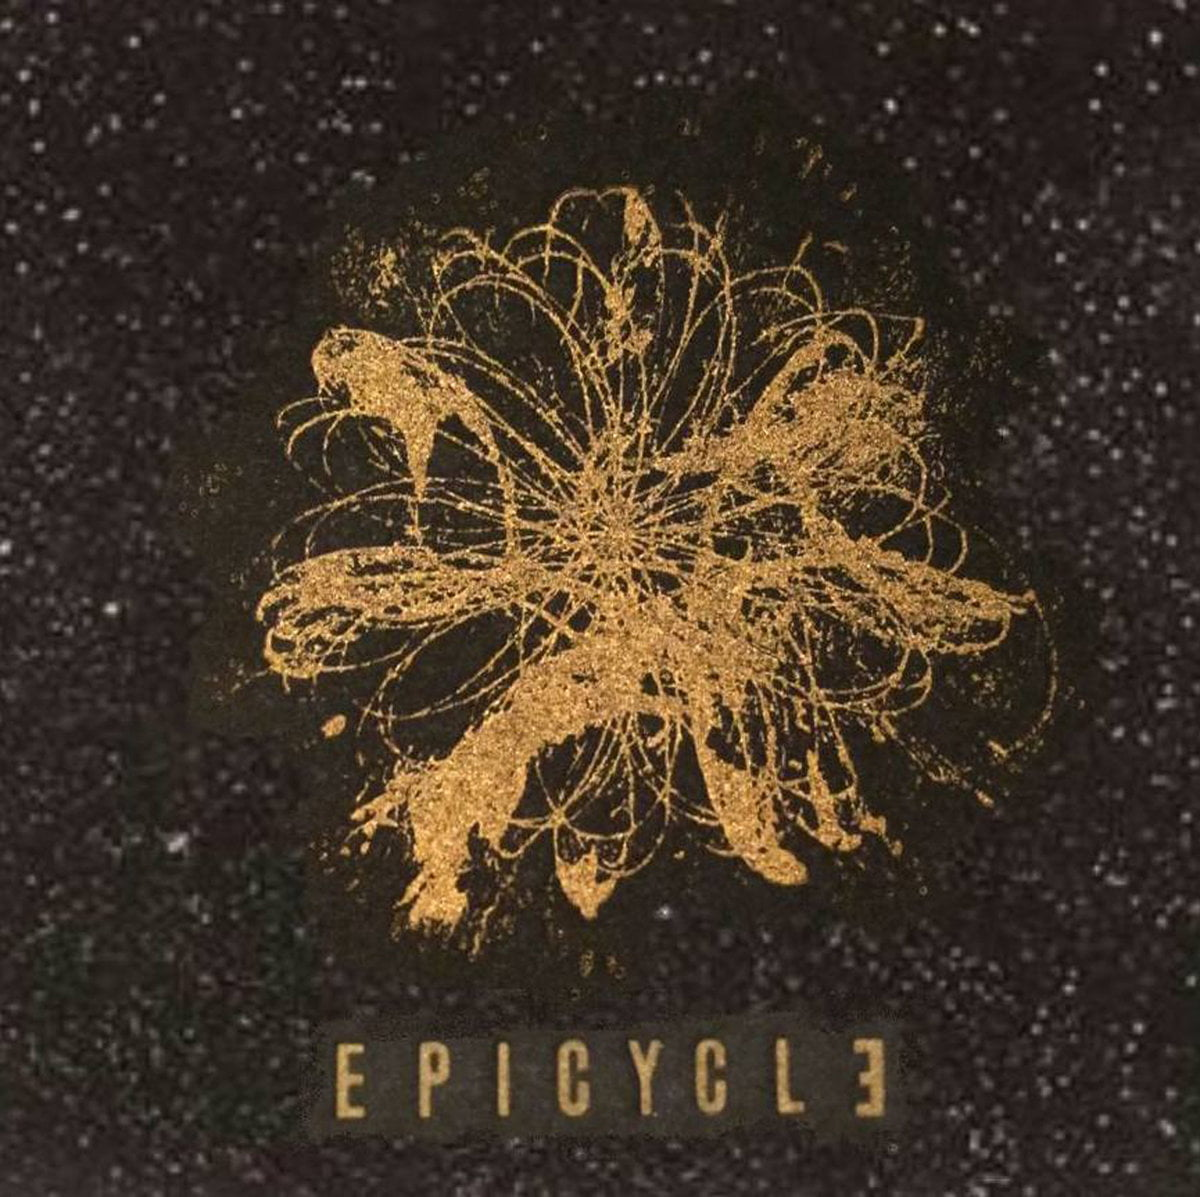 Track By Track: 'Epicycle' by Gyða Valtysdóttir